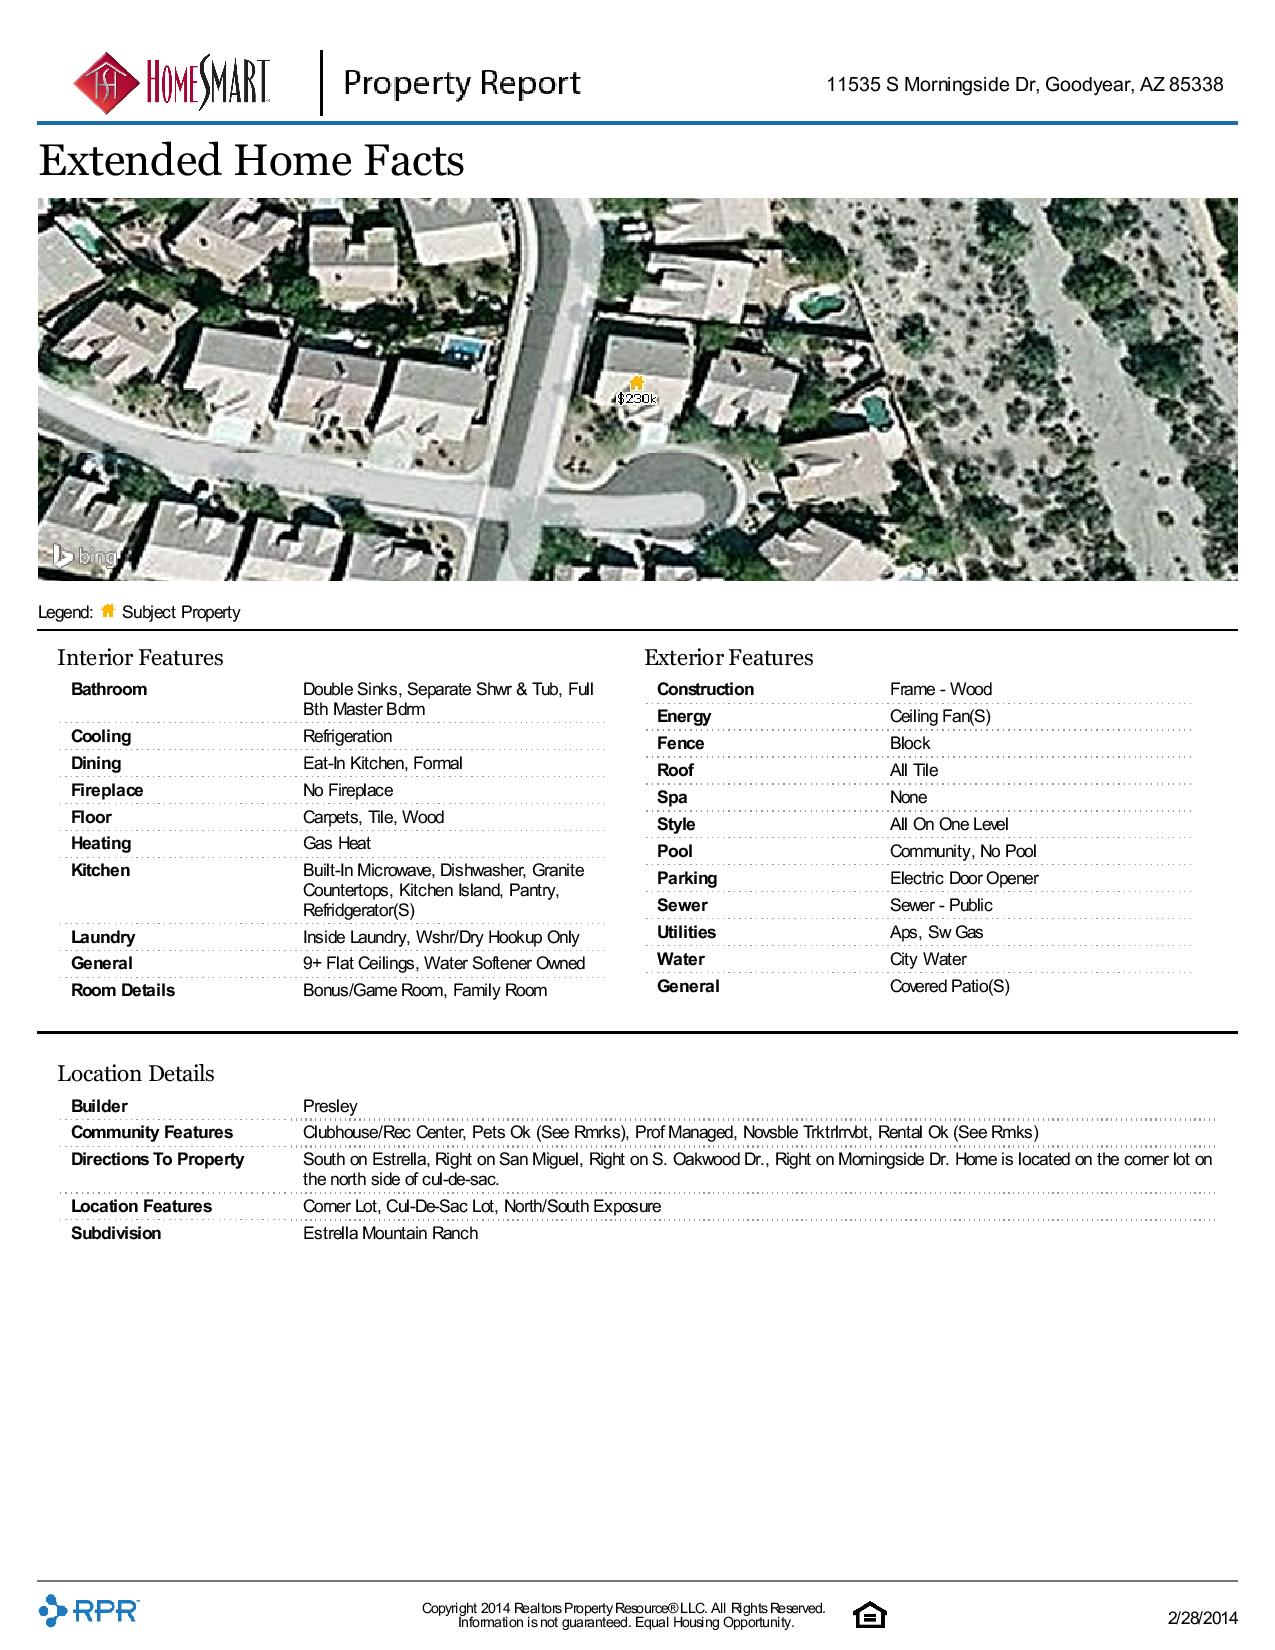 11535-S-Morningside-Dr-Goodyear-AZ-85338-page-004